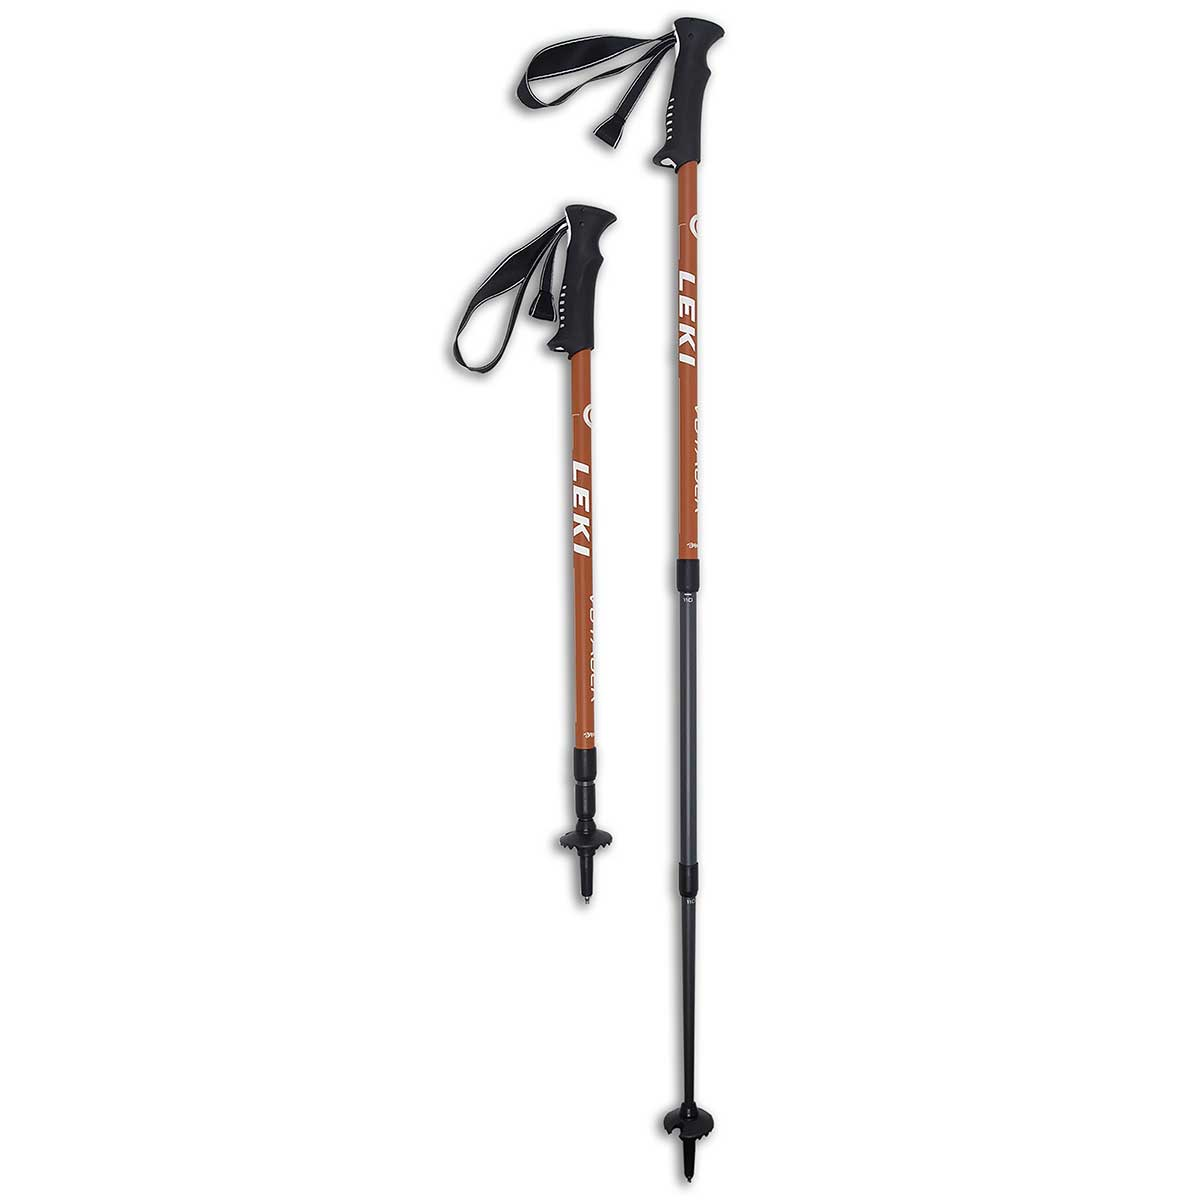 Leki Voyager Trekking Pole in one color